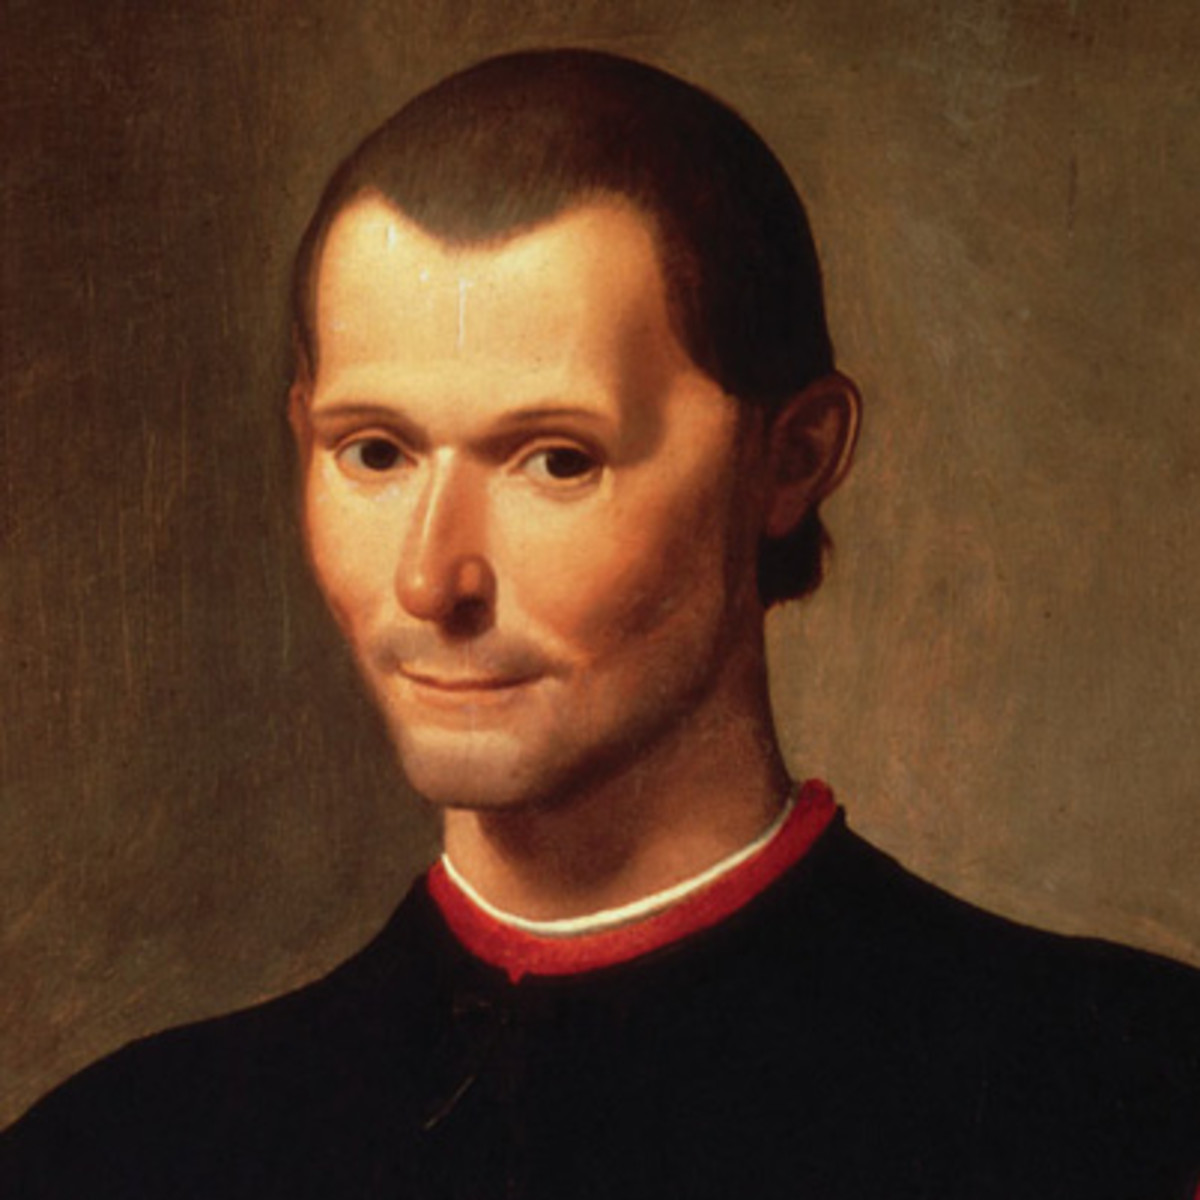 niccolo machiavelli writer diplomat biography